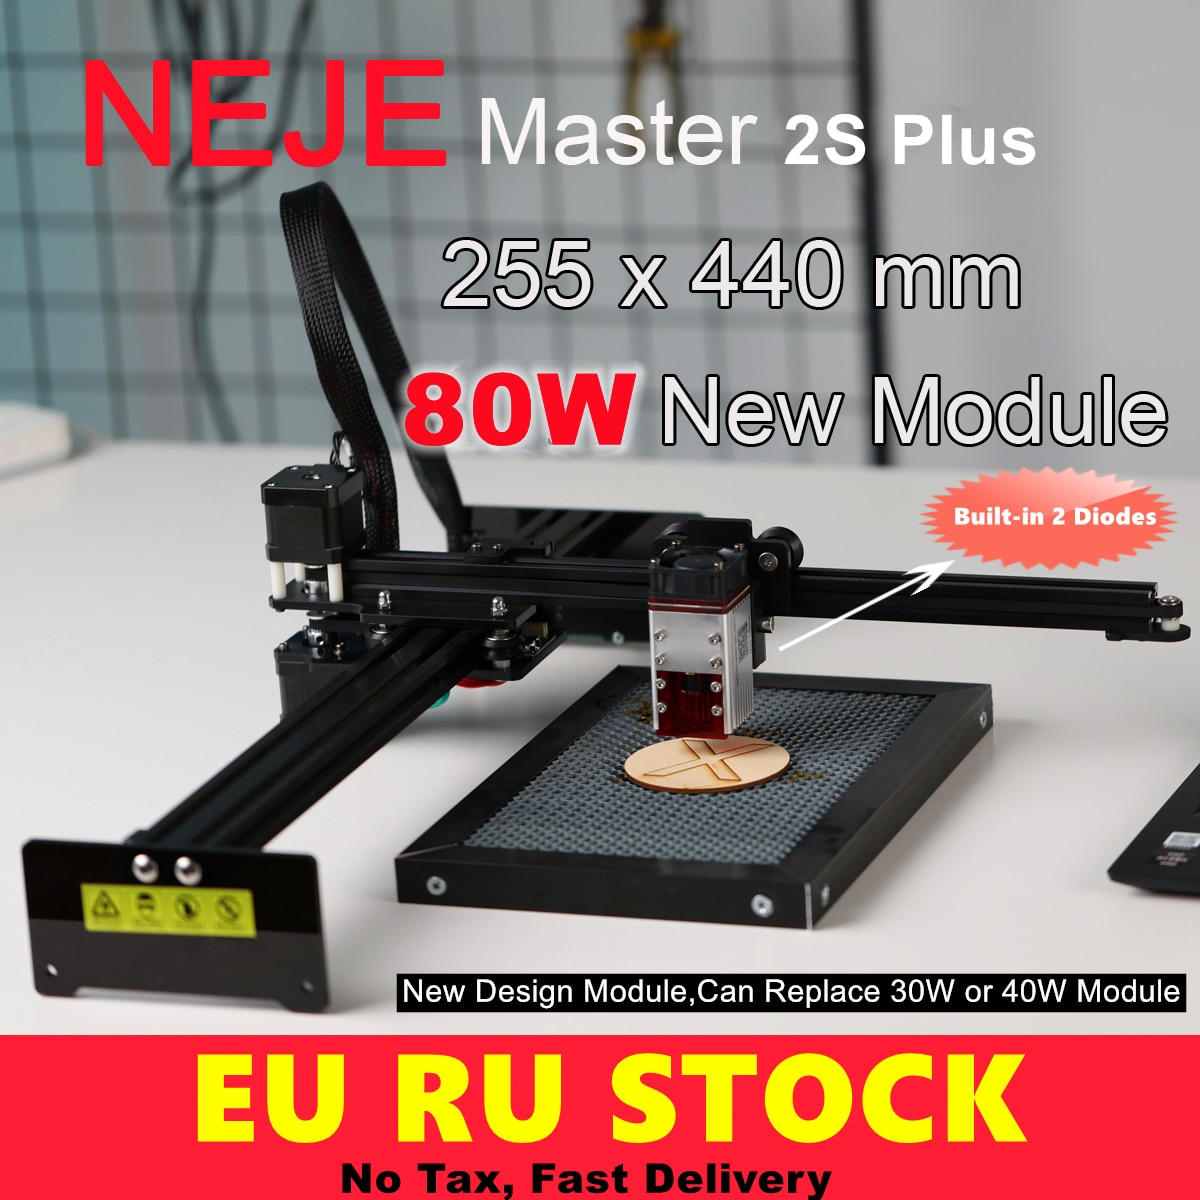 NEJE Master 2s Plus A40640 80W CNC Wood Laser Cutting Cutter Engraver Engraving Machine Router Lightburn,Bluetooth-App Control neje master 2s max 80w cnc double beam laser engraver cutter engraving cutting machine bluetooth lasergrbl lightburn 460x810mm